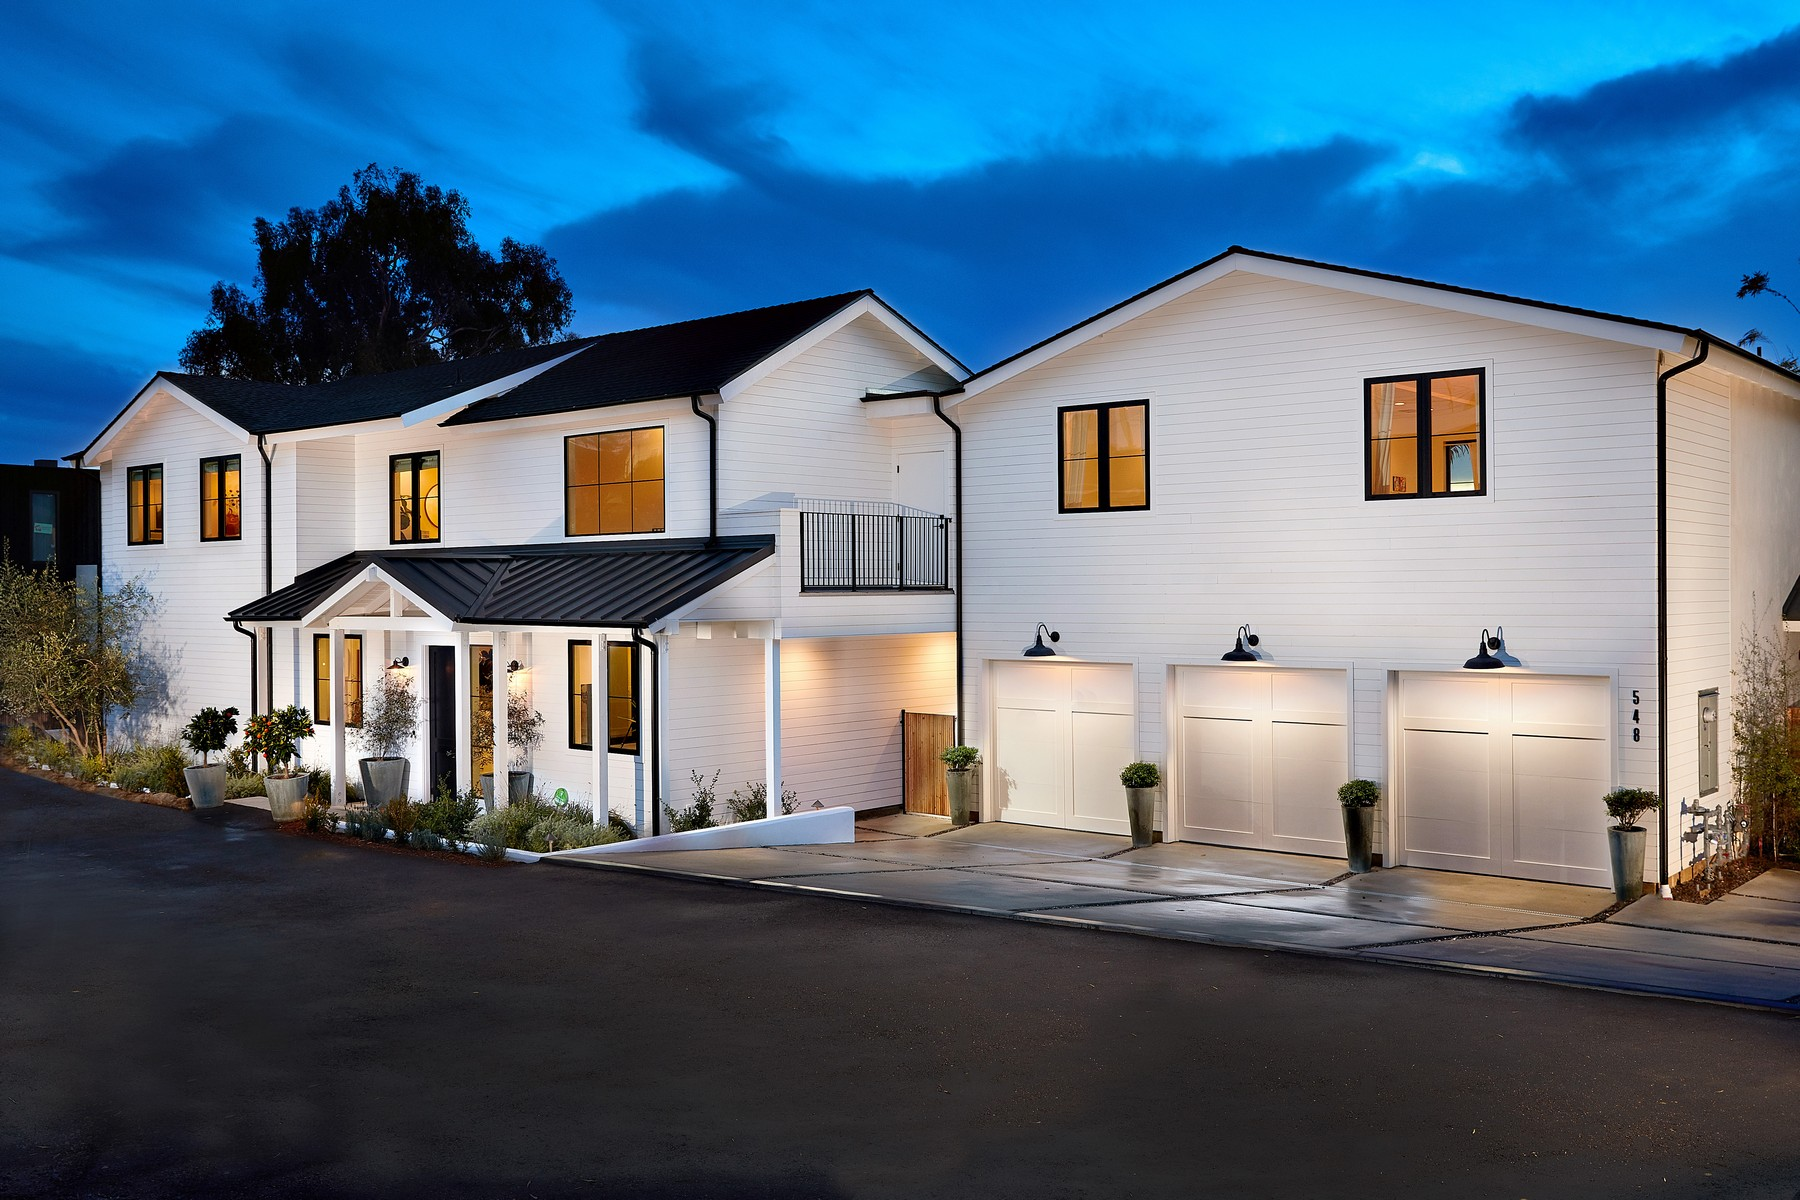 Single Family Homes for Active at 548 Hygeia Avenue Encinitas, California 92024 United States